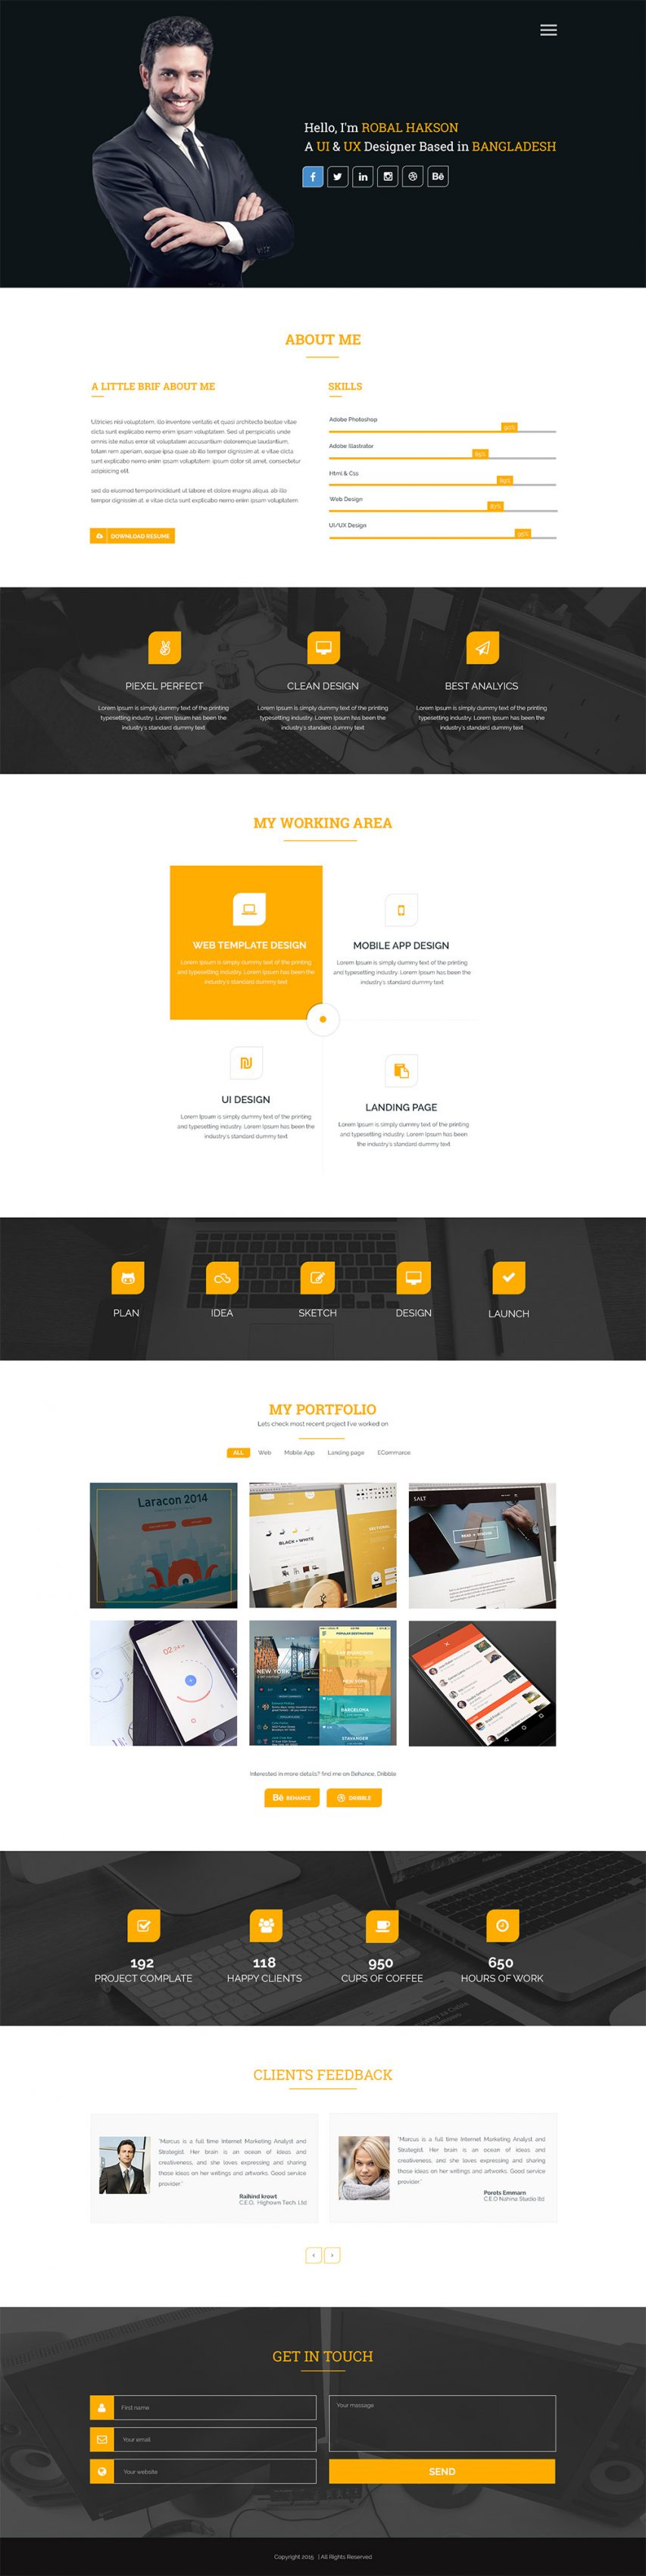 Clean One Page Corporate Portfolio Website